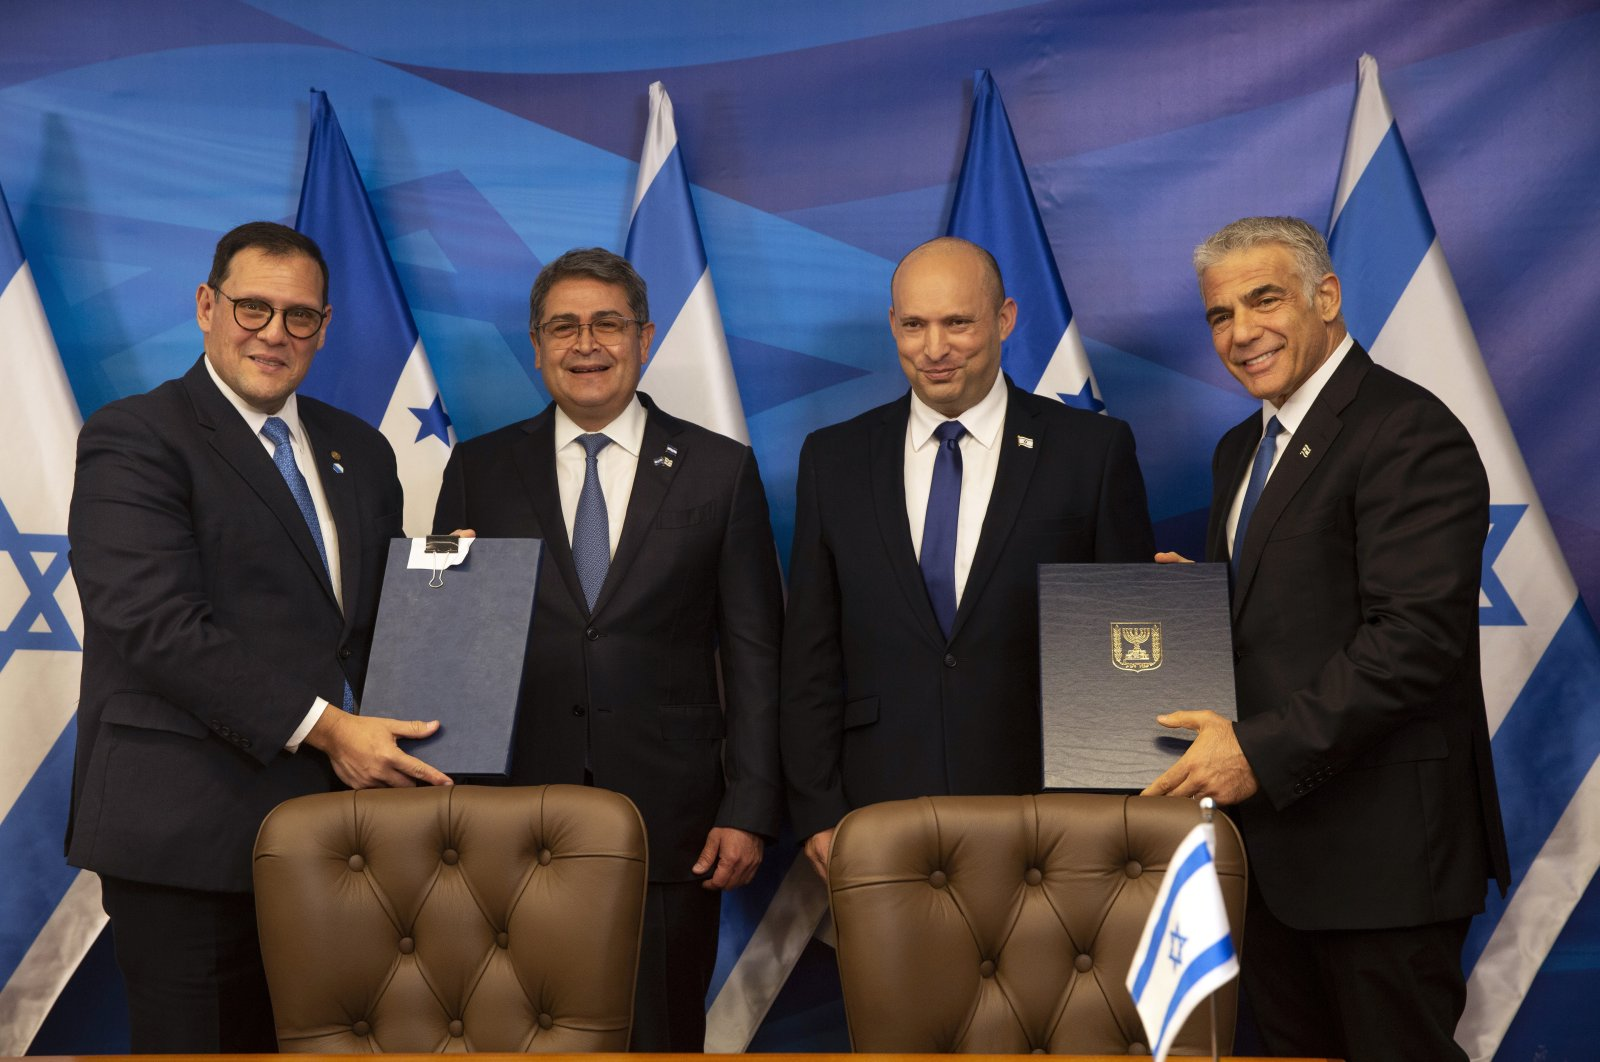 Israeli Prime Minister Naftali Bennett (2nd R), and Honduran President Juan Orlando Hernandez (2nd L), look on as Israeli Foreign Minister Yair Lapid (R), and Honduran Foreign Minister Lisandro Rosales hold signed agreements between their two countries at the prime minister's office, Jerusalem, June 24, 2021. (AP Photo)